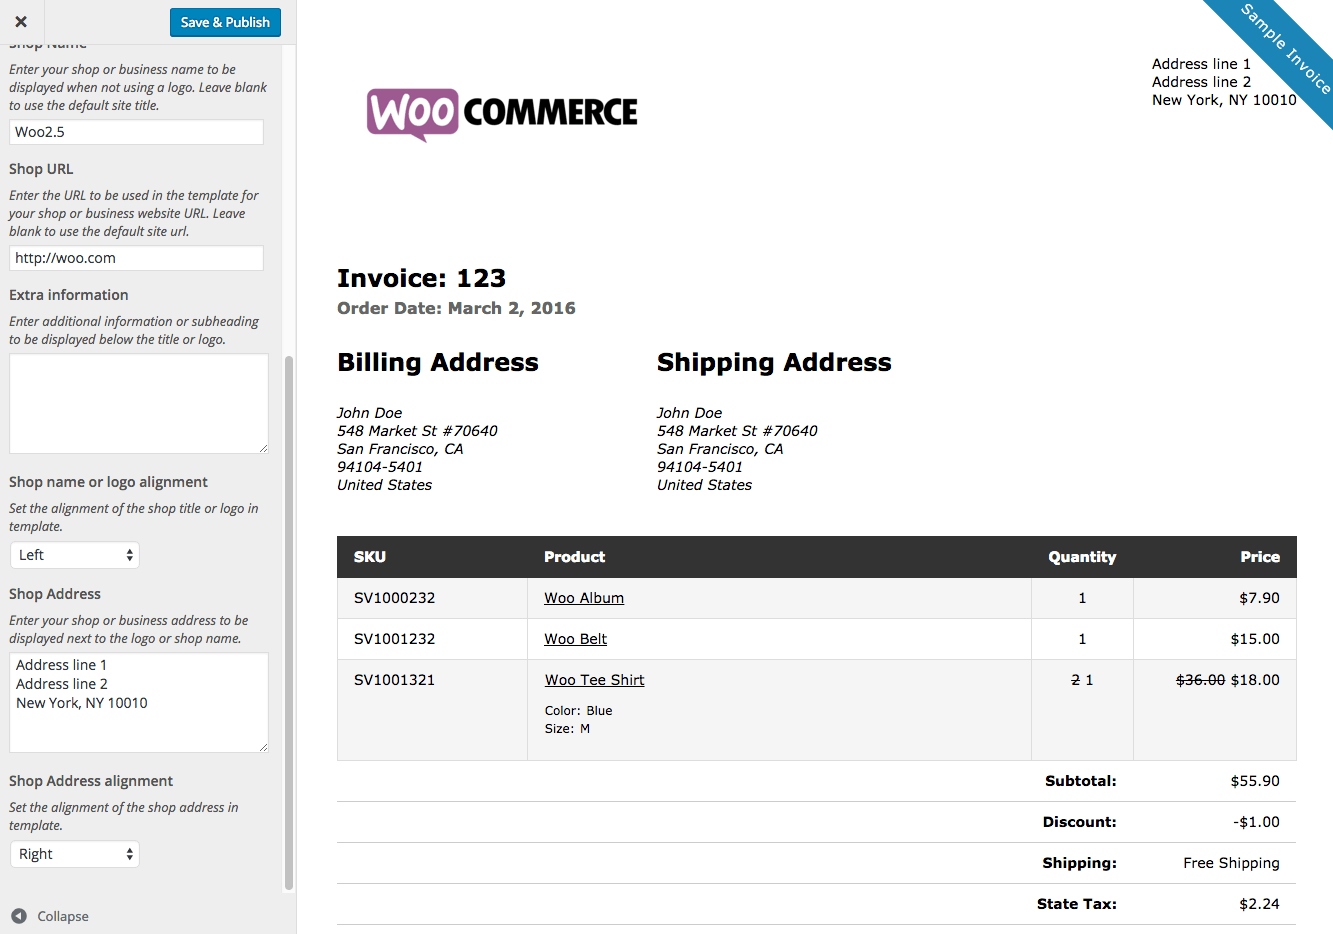 Pigbrotherus  Unique Woocommerce Print Invoices Amp Packing Lists  Woocommerce Docs With Marvelous Woocommerce Print Invoices  Packing Lists Customizer With Beautiful Square Receipt Lookup Also What Is A Receipt In Addition Costco Return Policy Without Receipt And American Airlines Baggage Receipt As Well As Printable Receipts Additionally Hertz Receipts From Docswoocommercecom With Pigbrotherus  Marvelous Woocommerce Print Invoices Amp Packing Lists  Woocommerce Docs With Beautiful Woocommerce Print Invoices  Packing Lists Customizer And Unique Square Receipt Lookup Also What Is A Receipt In Addition Costco Return Policy Without Receipt From Docswoocommercecom